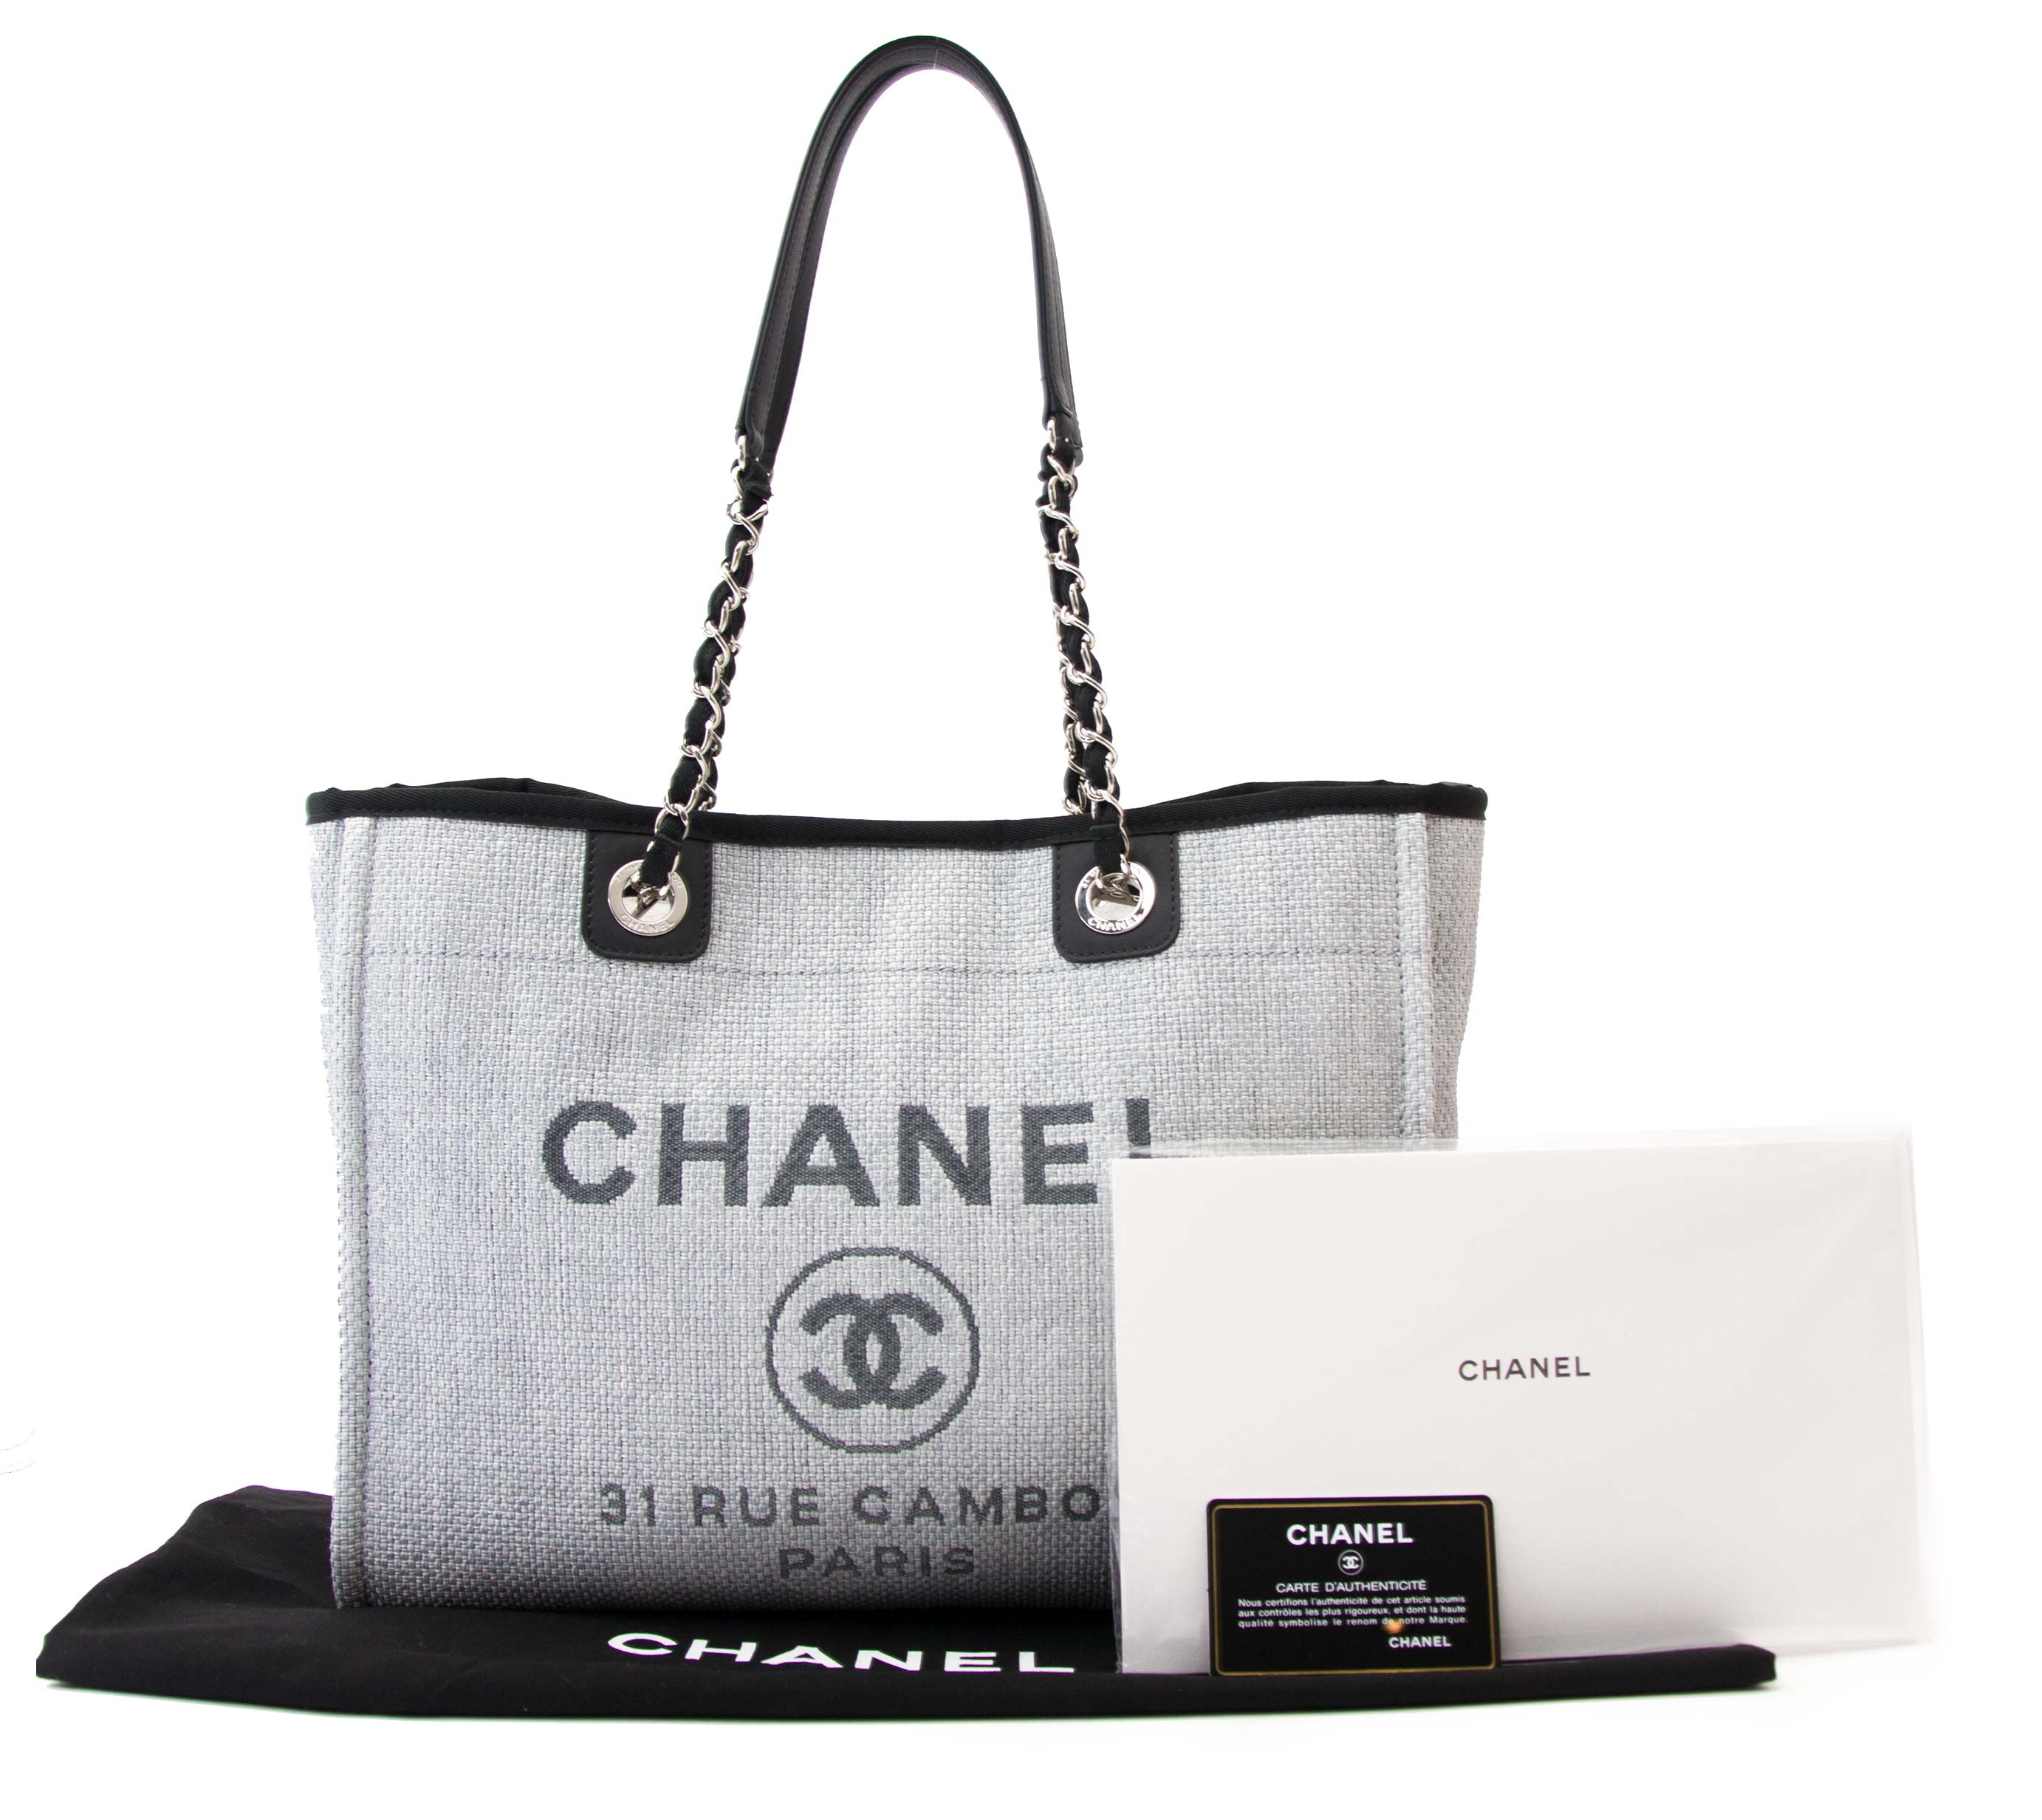 e7dba2208330 Chanel Deauville 31 Rue Cambon Tote Bag at 1stdibs